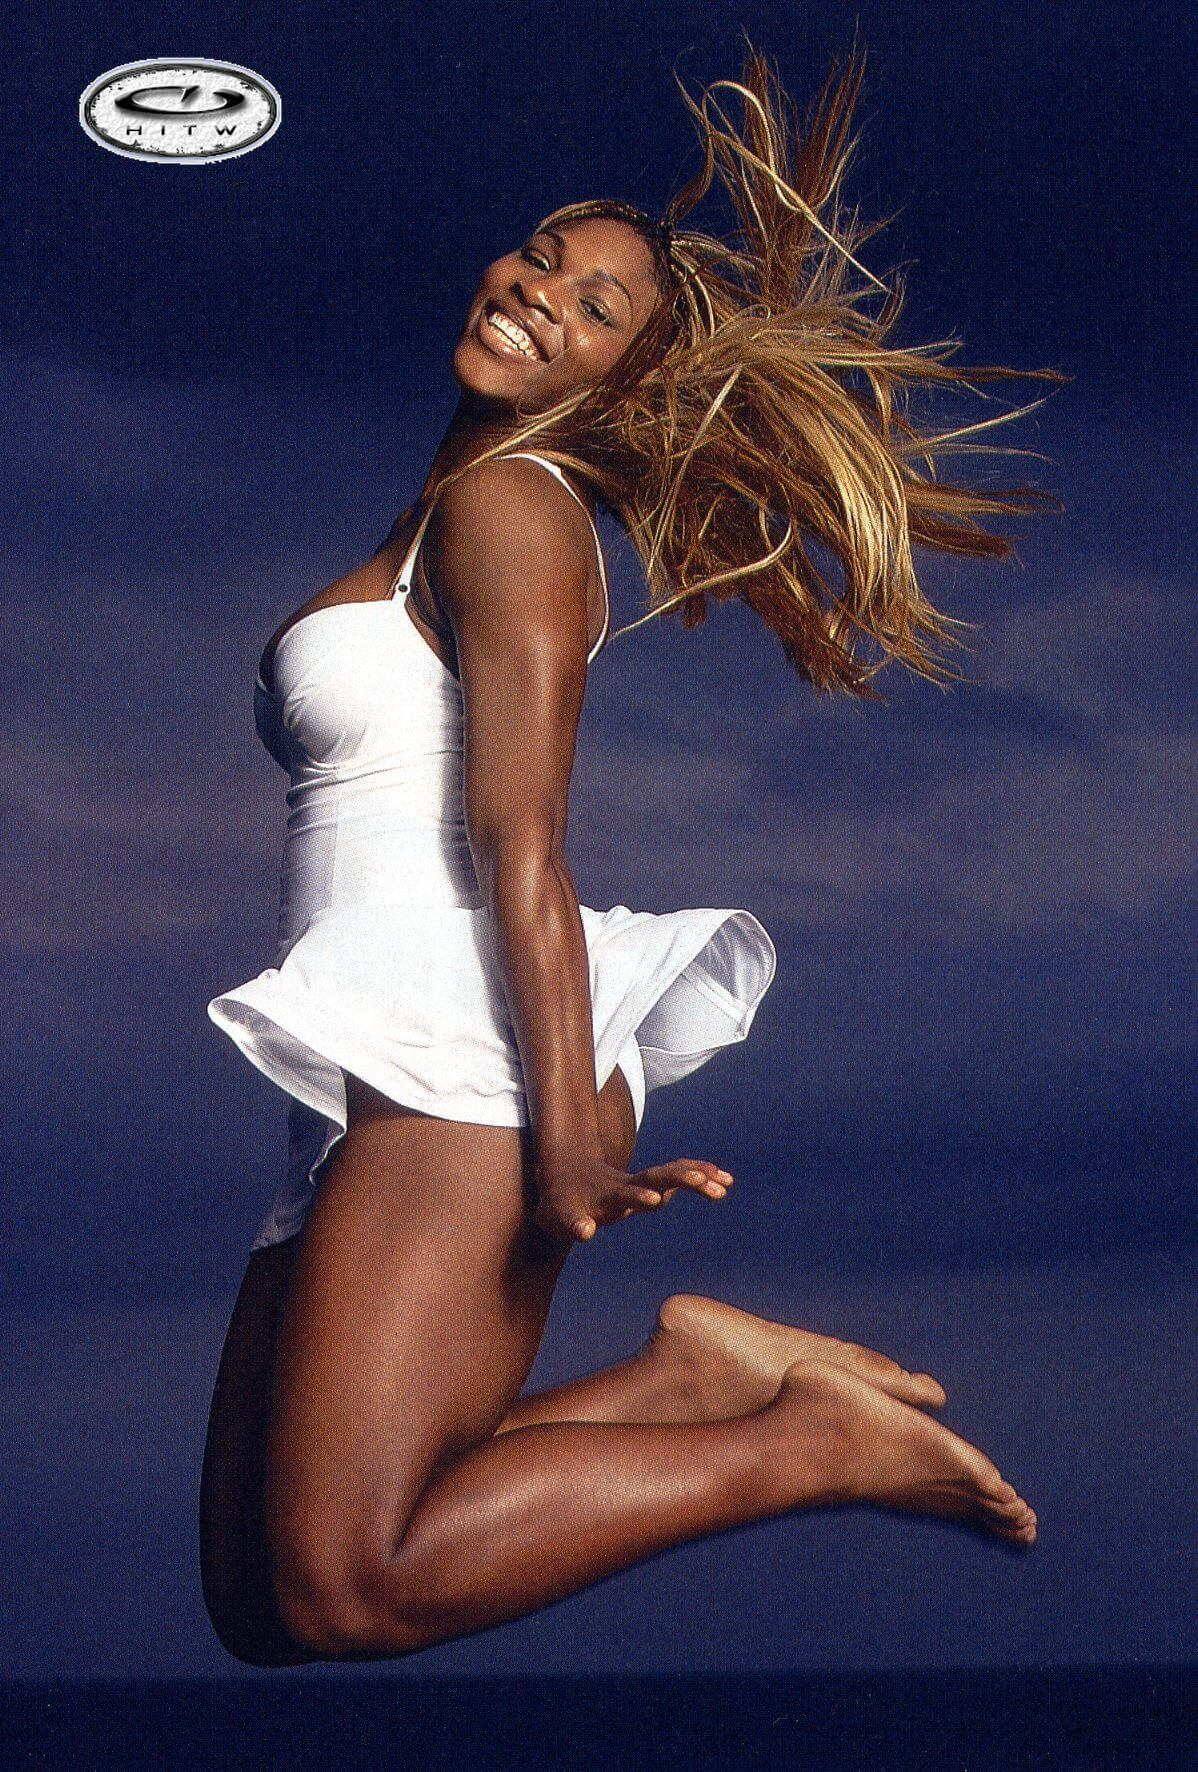 Serena Williams hot side pic